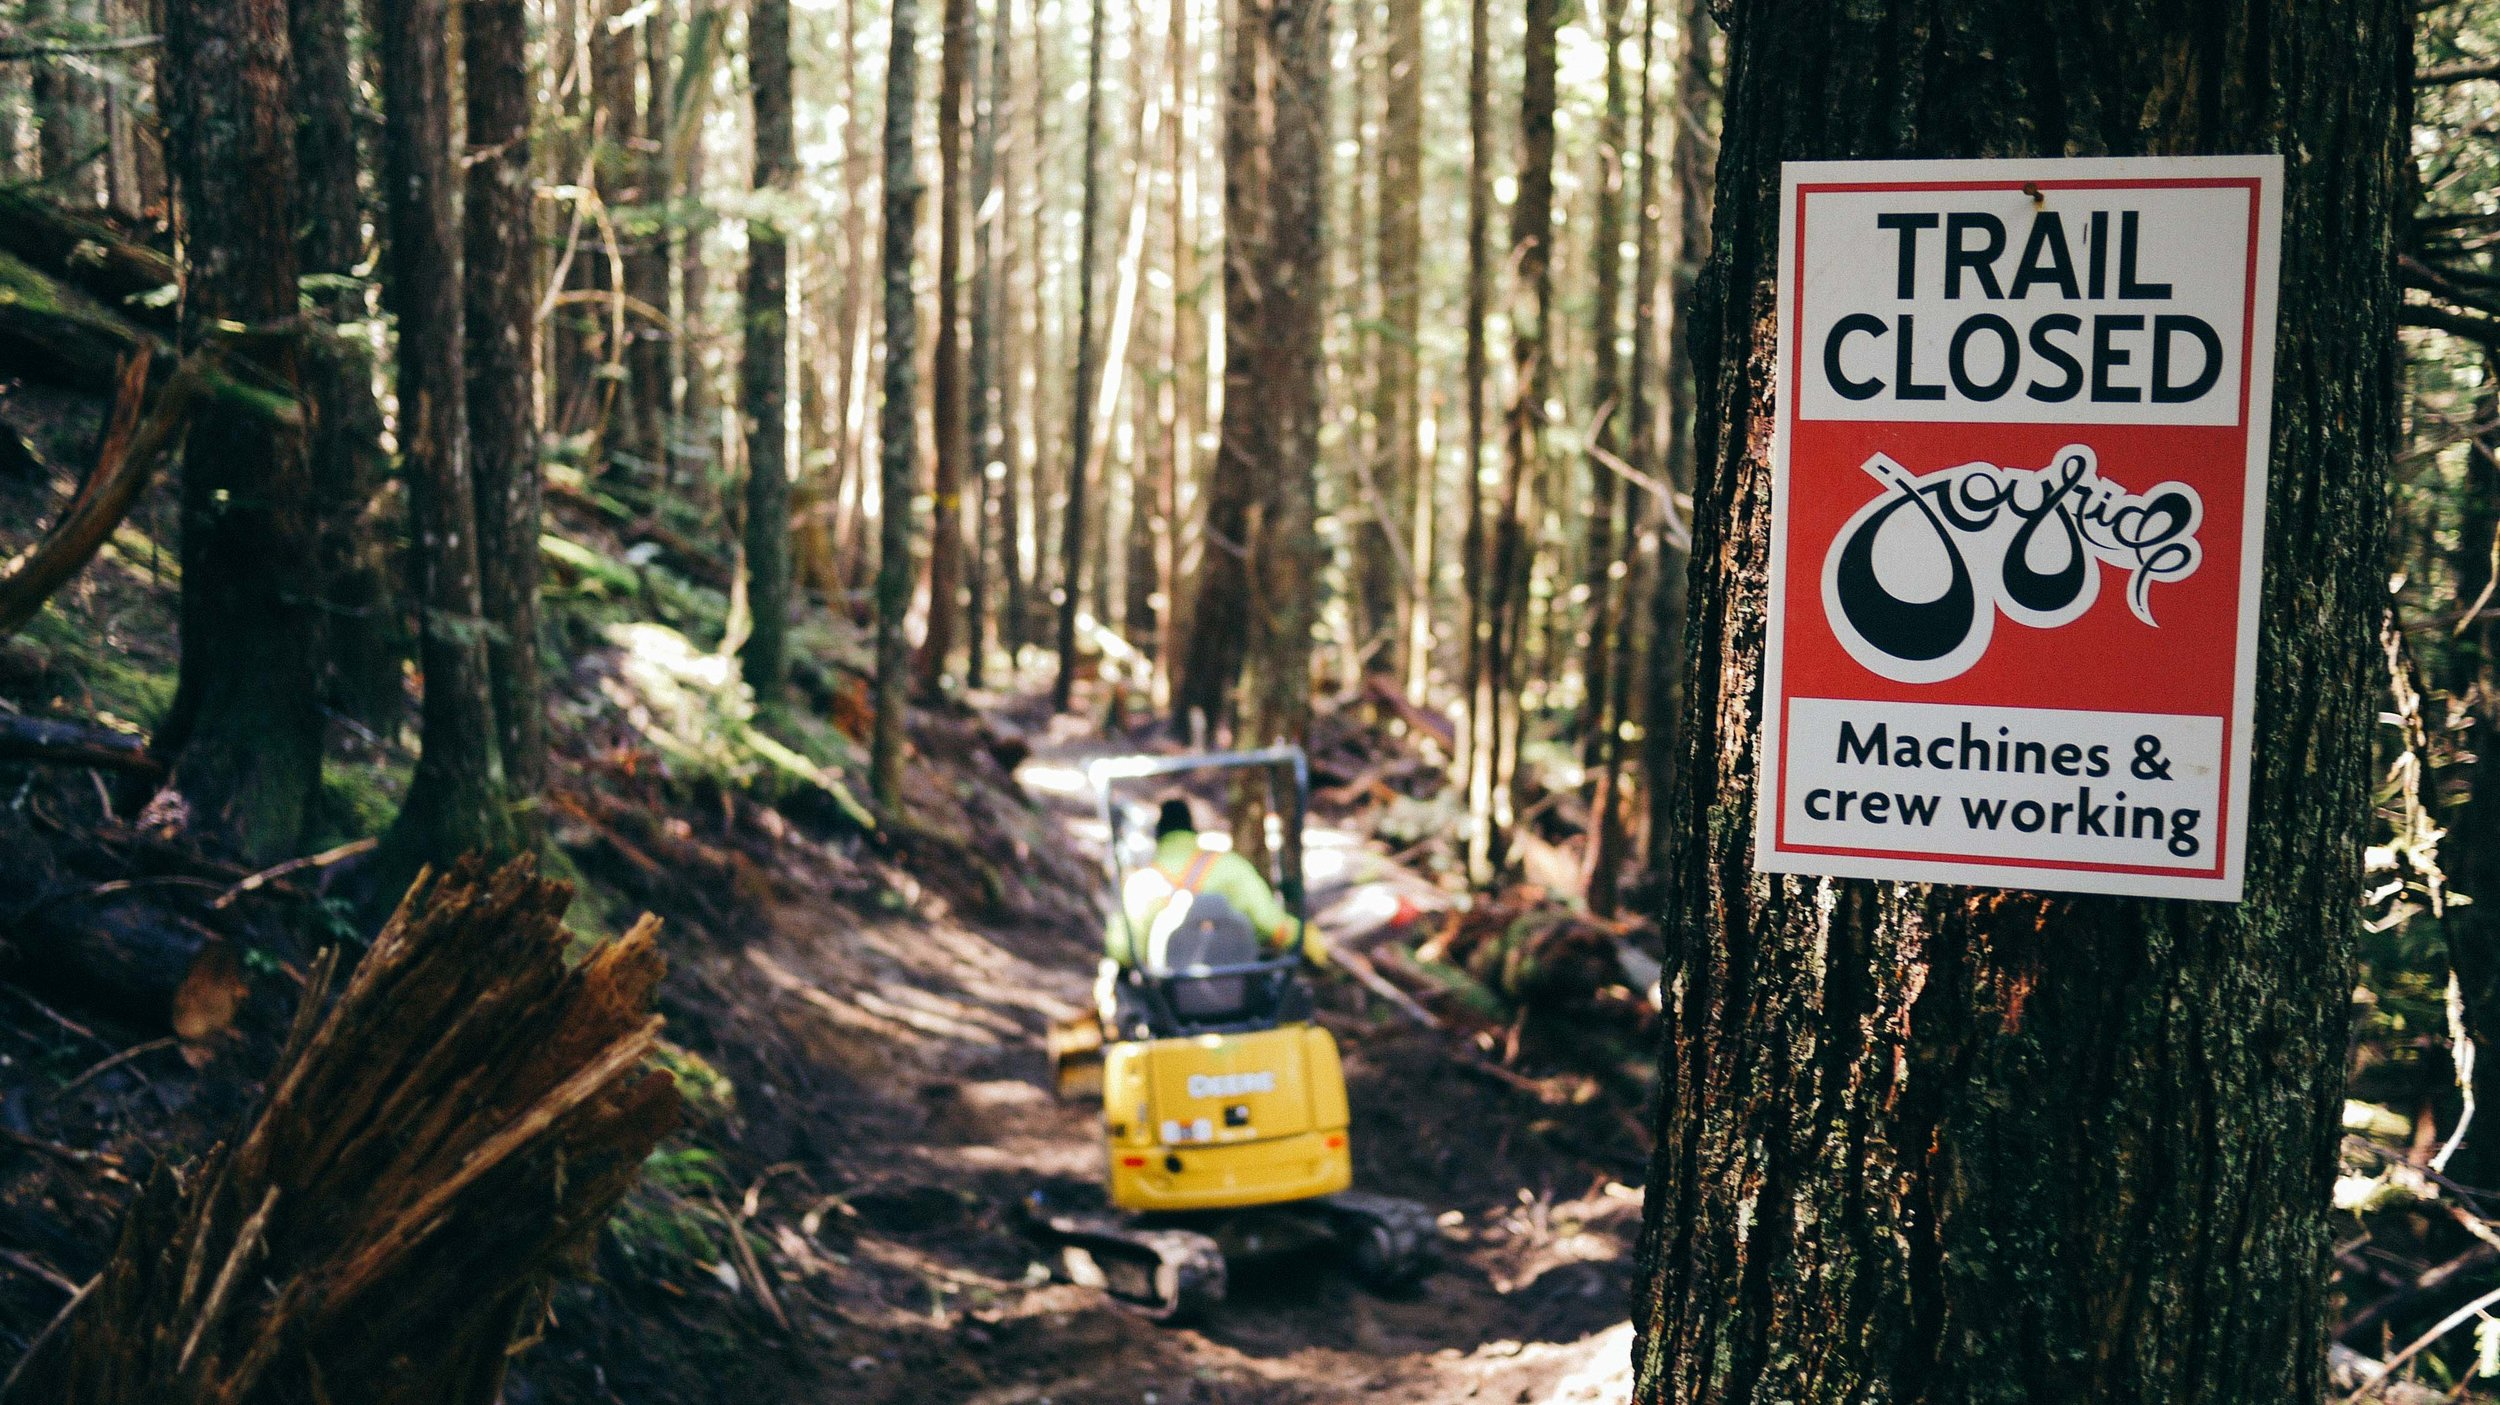 trail building services, machines and crew working